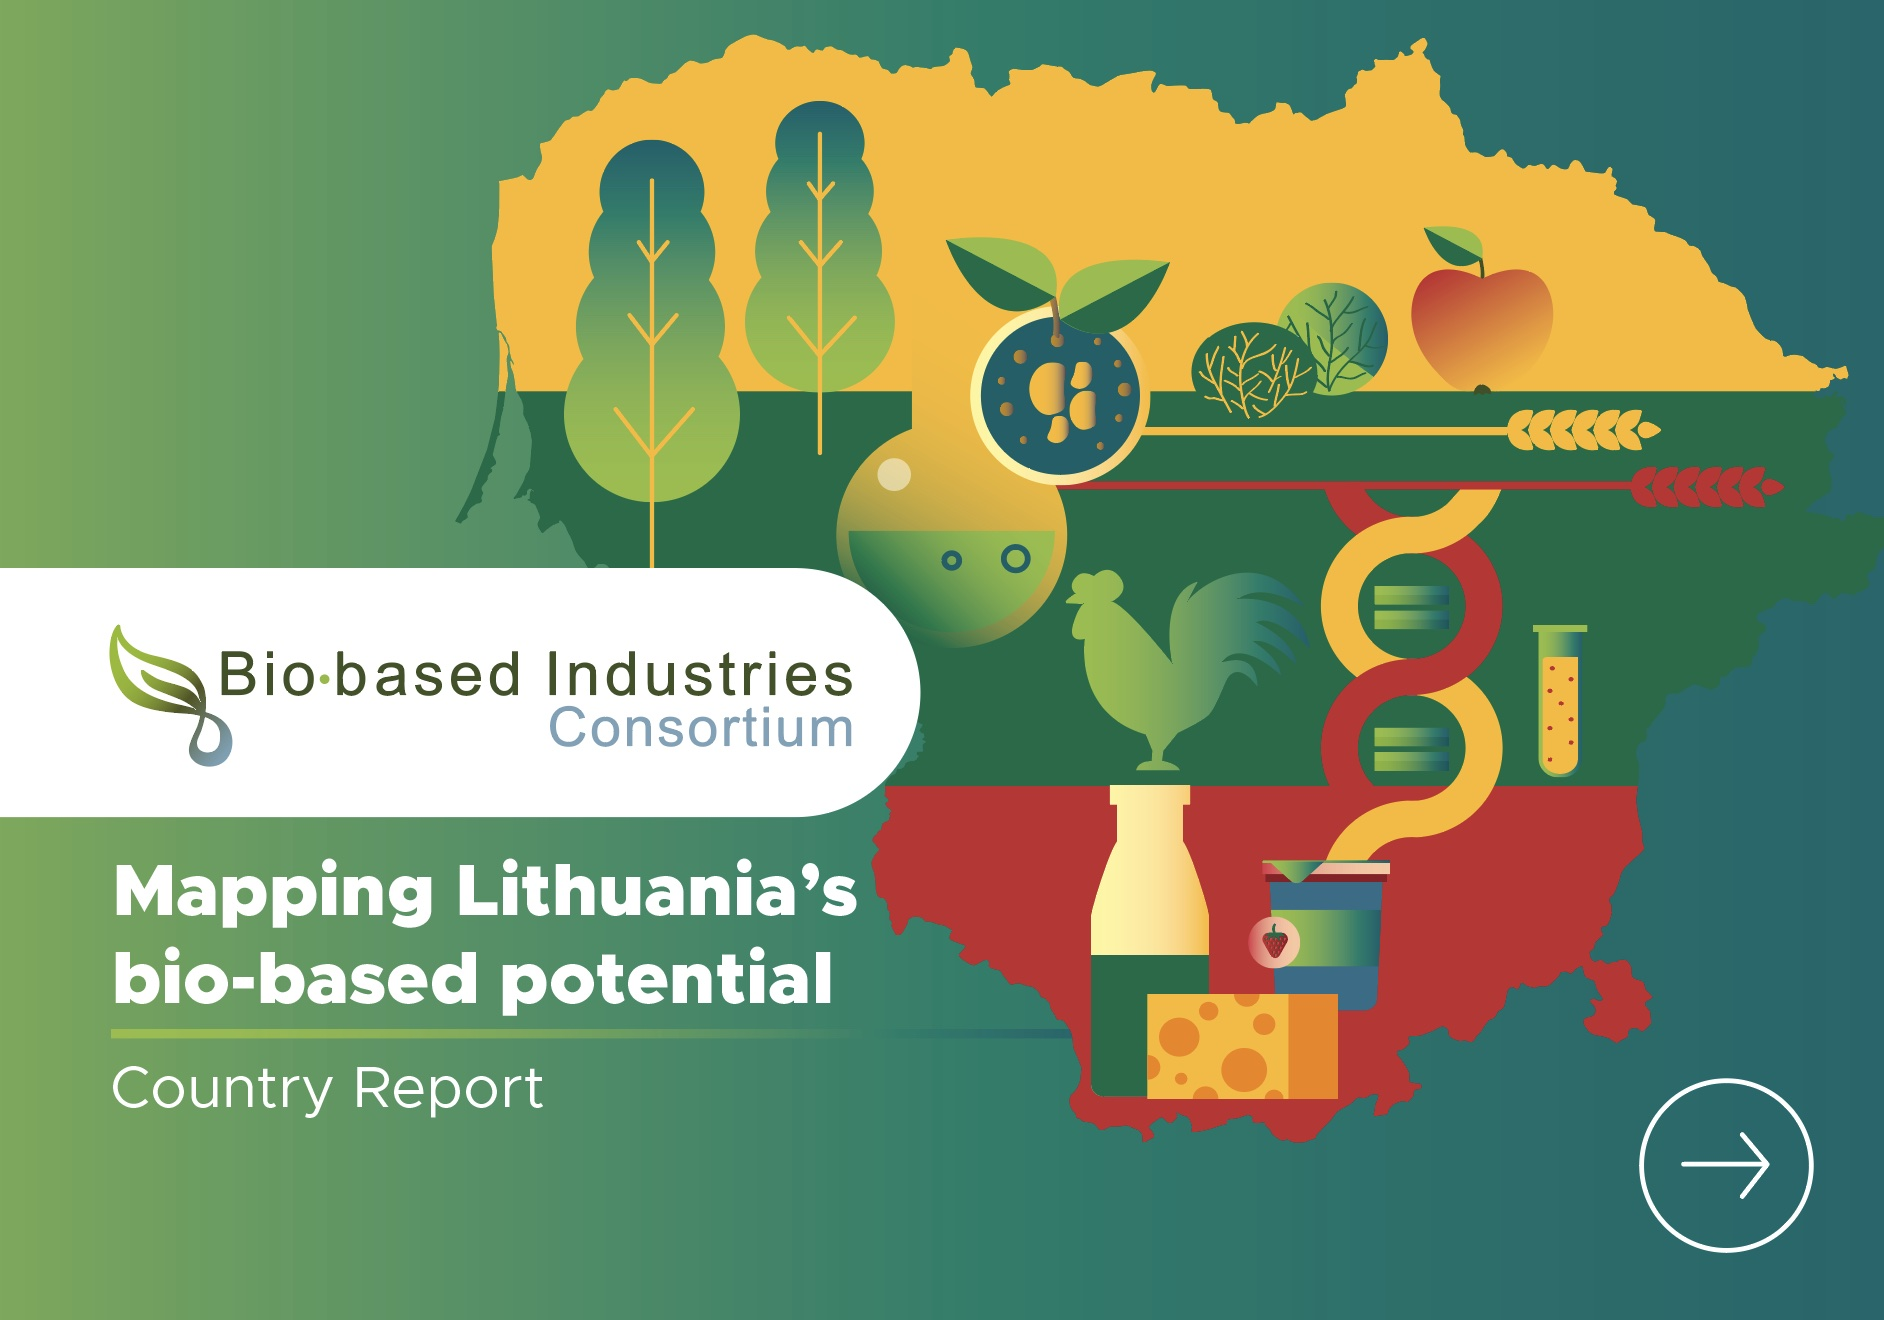 Mapping Lithuania's bio-based potential